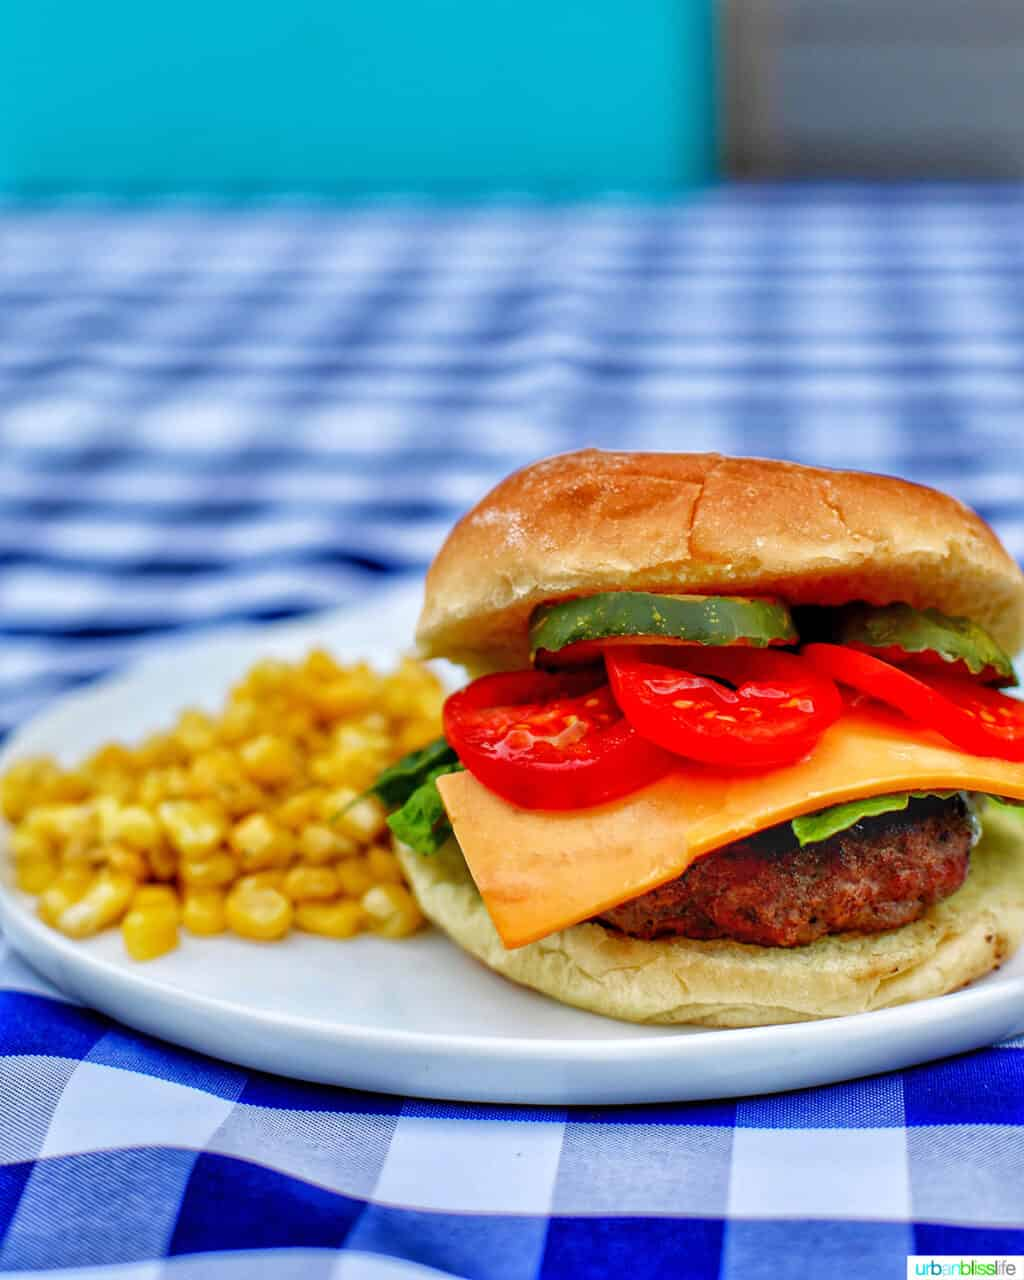 burger and side of corn on checkered tablecloth